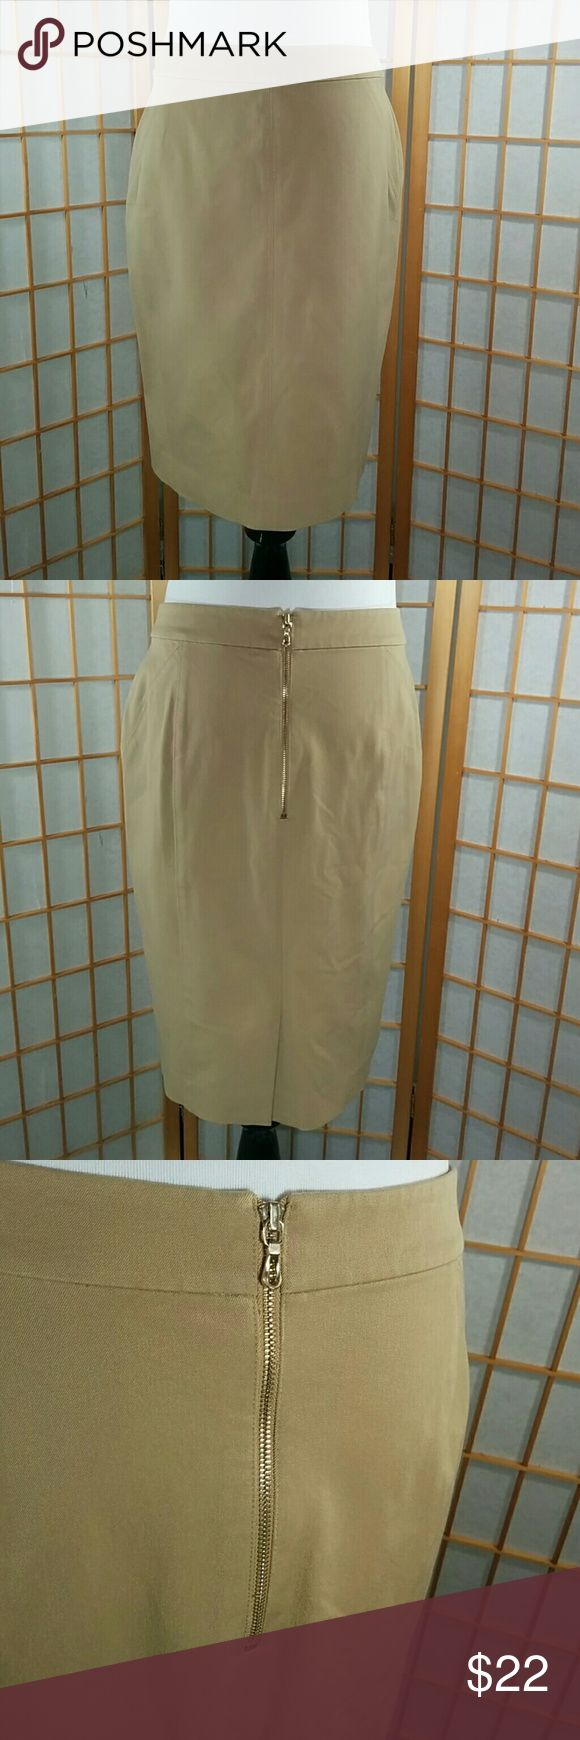 "Ann Taylor Petites, tan pencil skirt Ann Taylor Petites tan pencil skirt with a great gold zipper in the back. Excellent used condition. Skirt measures 14"" across the waist when laid flat, 20""long and has a a 5"" slit in the back. Ann Taylor Skirts Pencil"